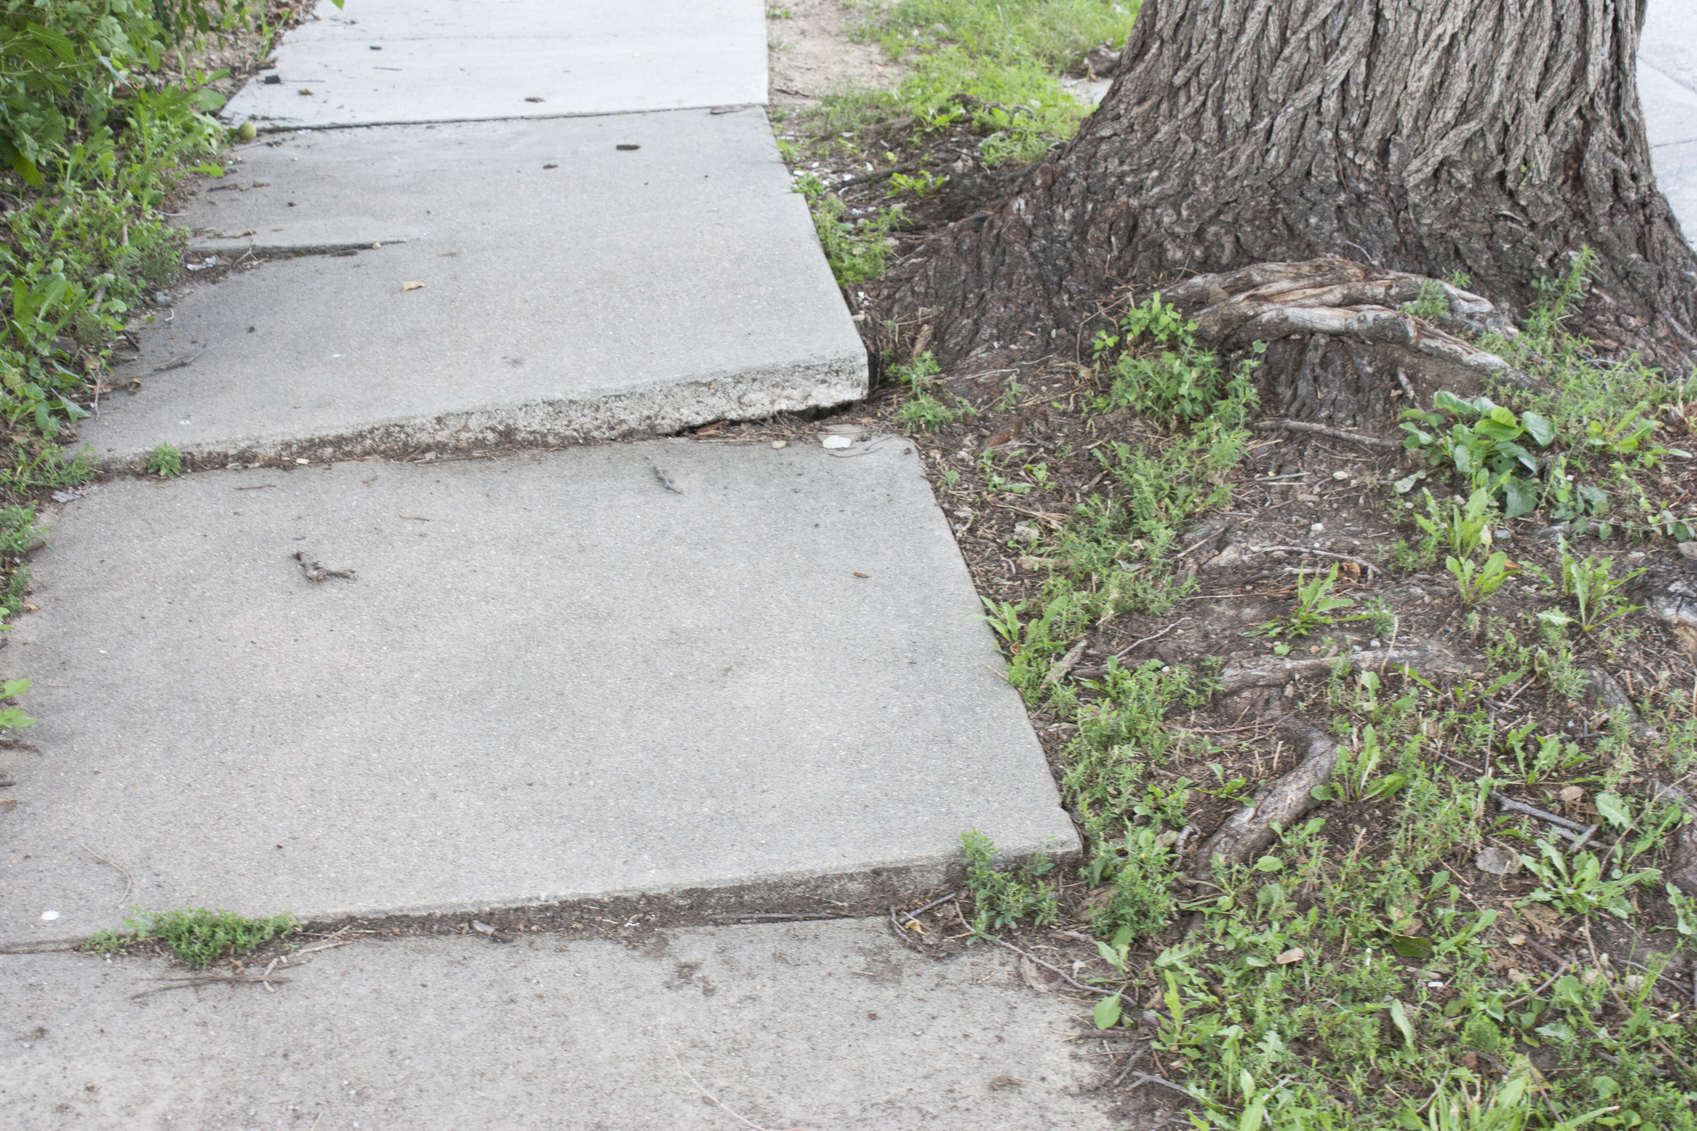 Sidewalk disheveled by tree roots